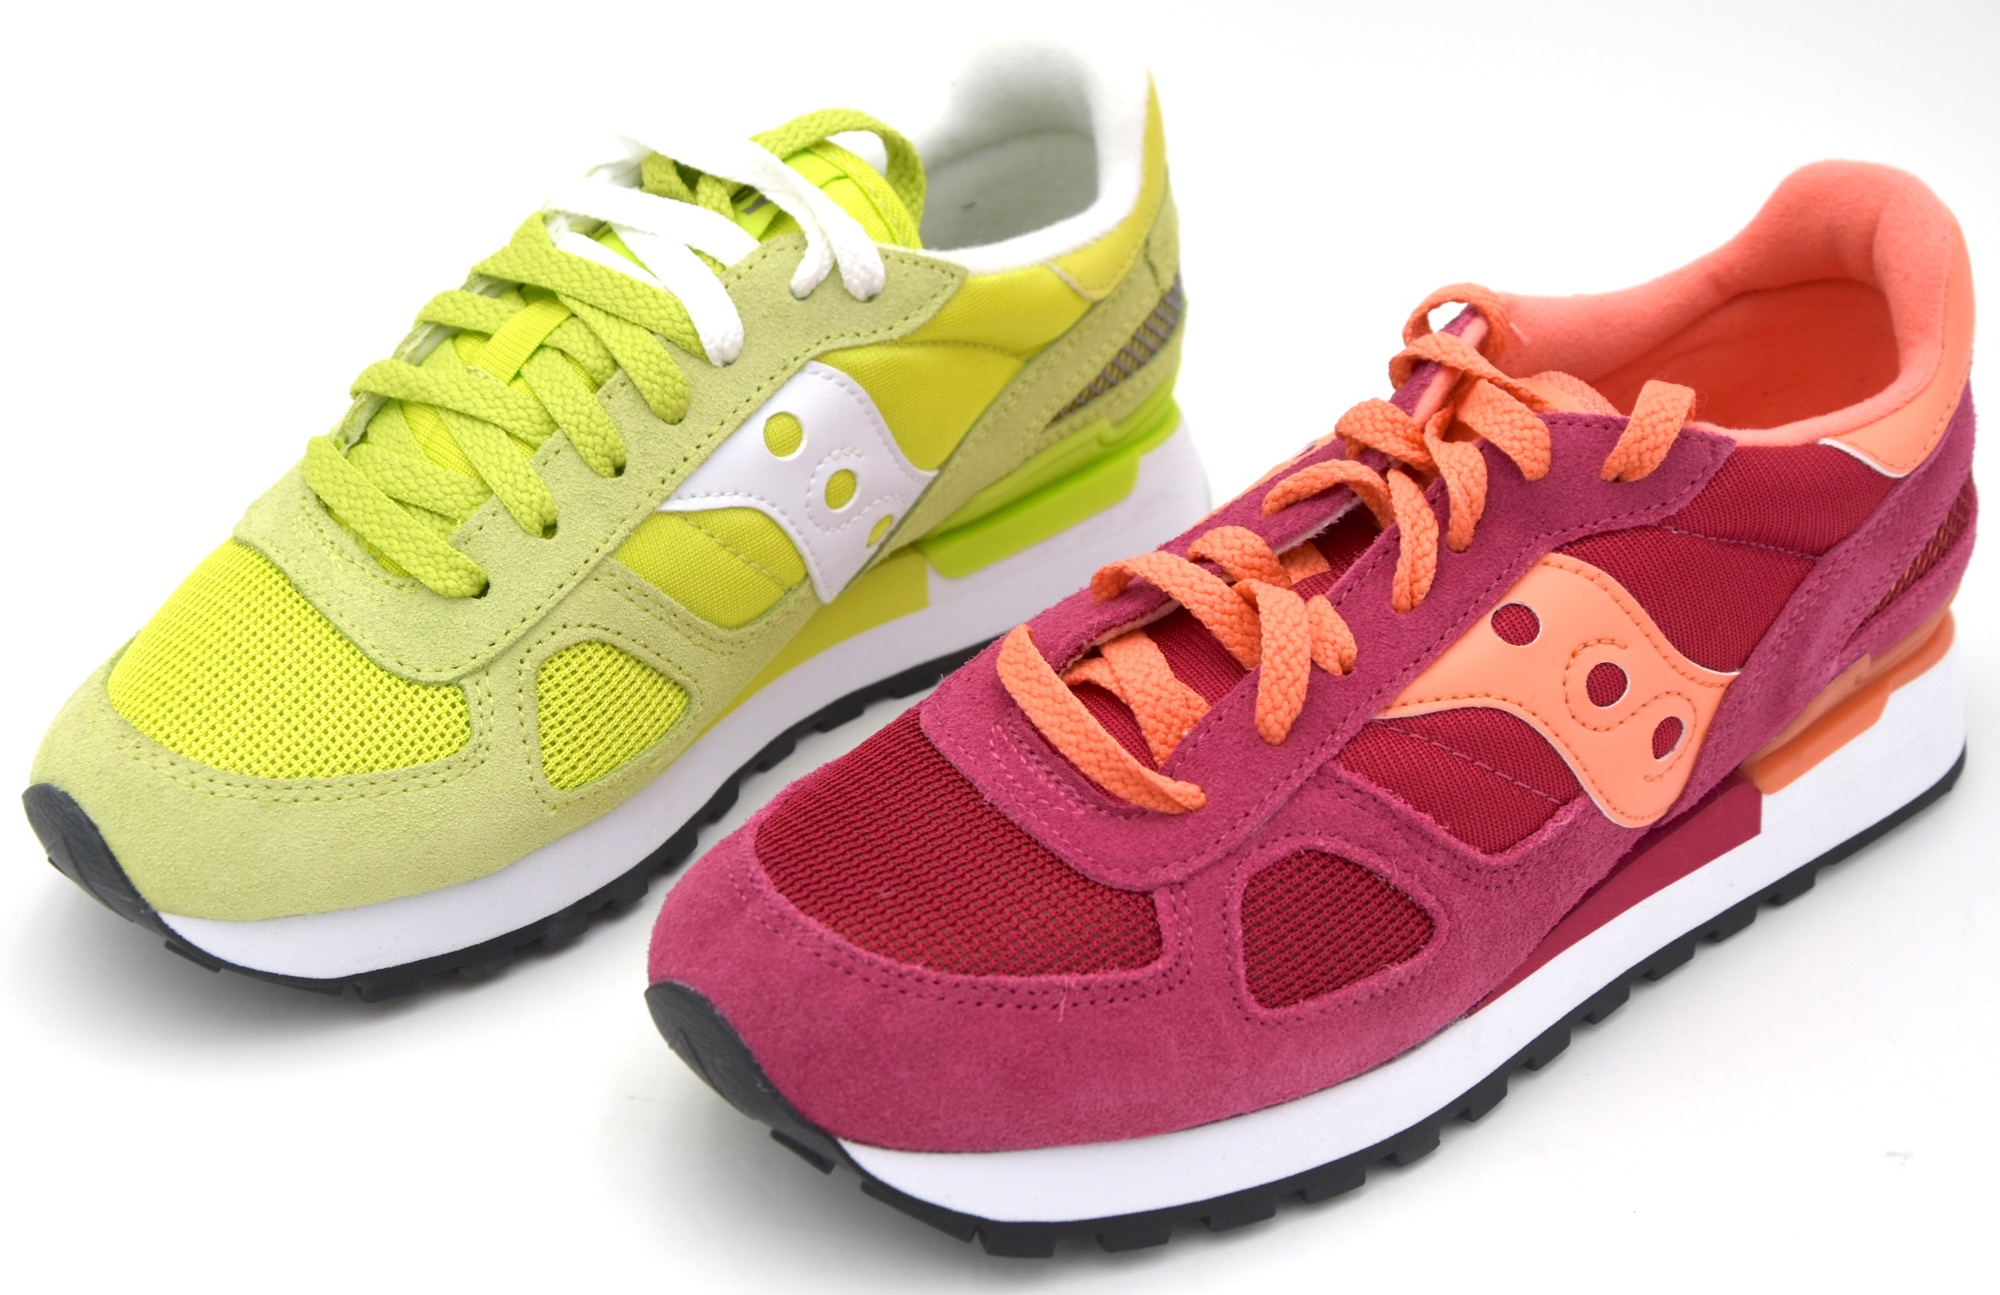 online retailer 475e8 70a07 Details about SAUCONY WOMAN SNEAKER SHOES CASUAL FREE TIME CODE S1108  SHADOW ORIGINAL